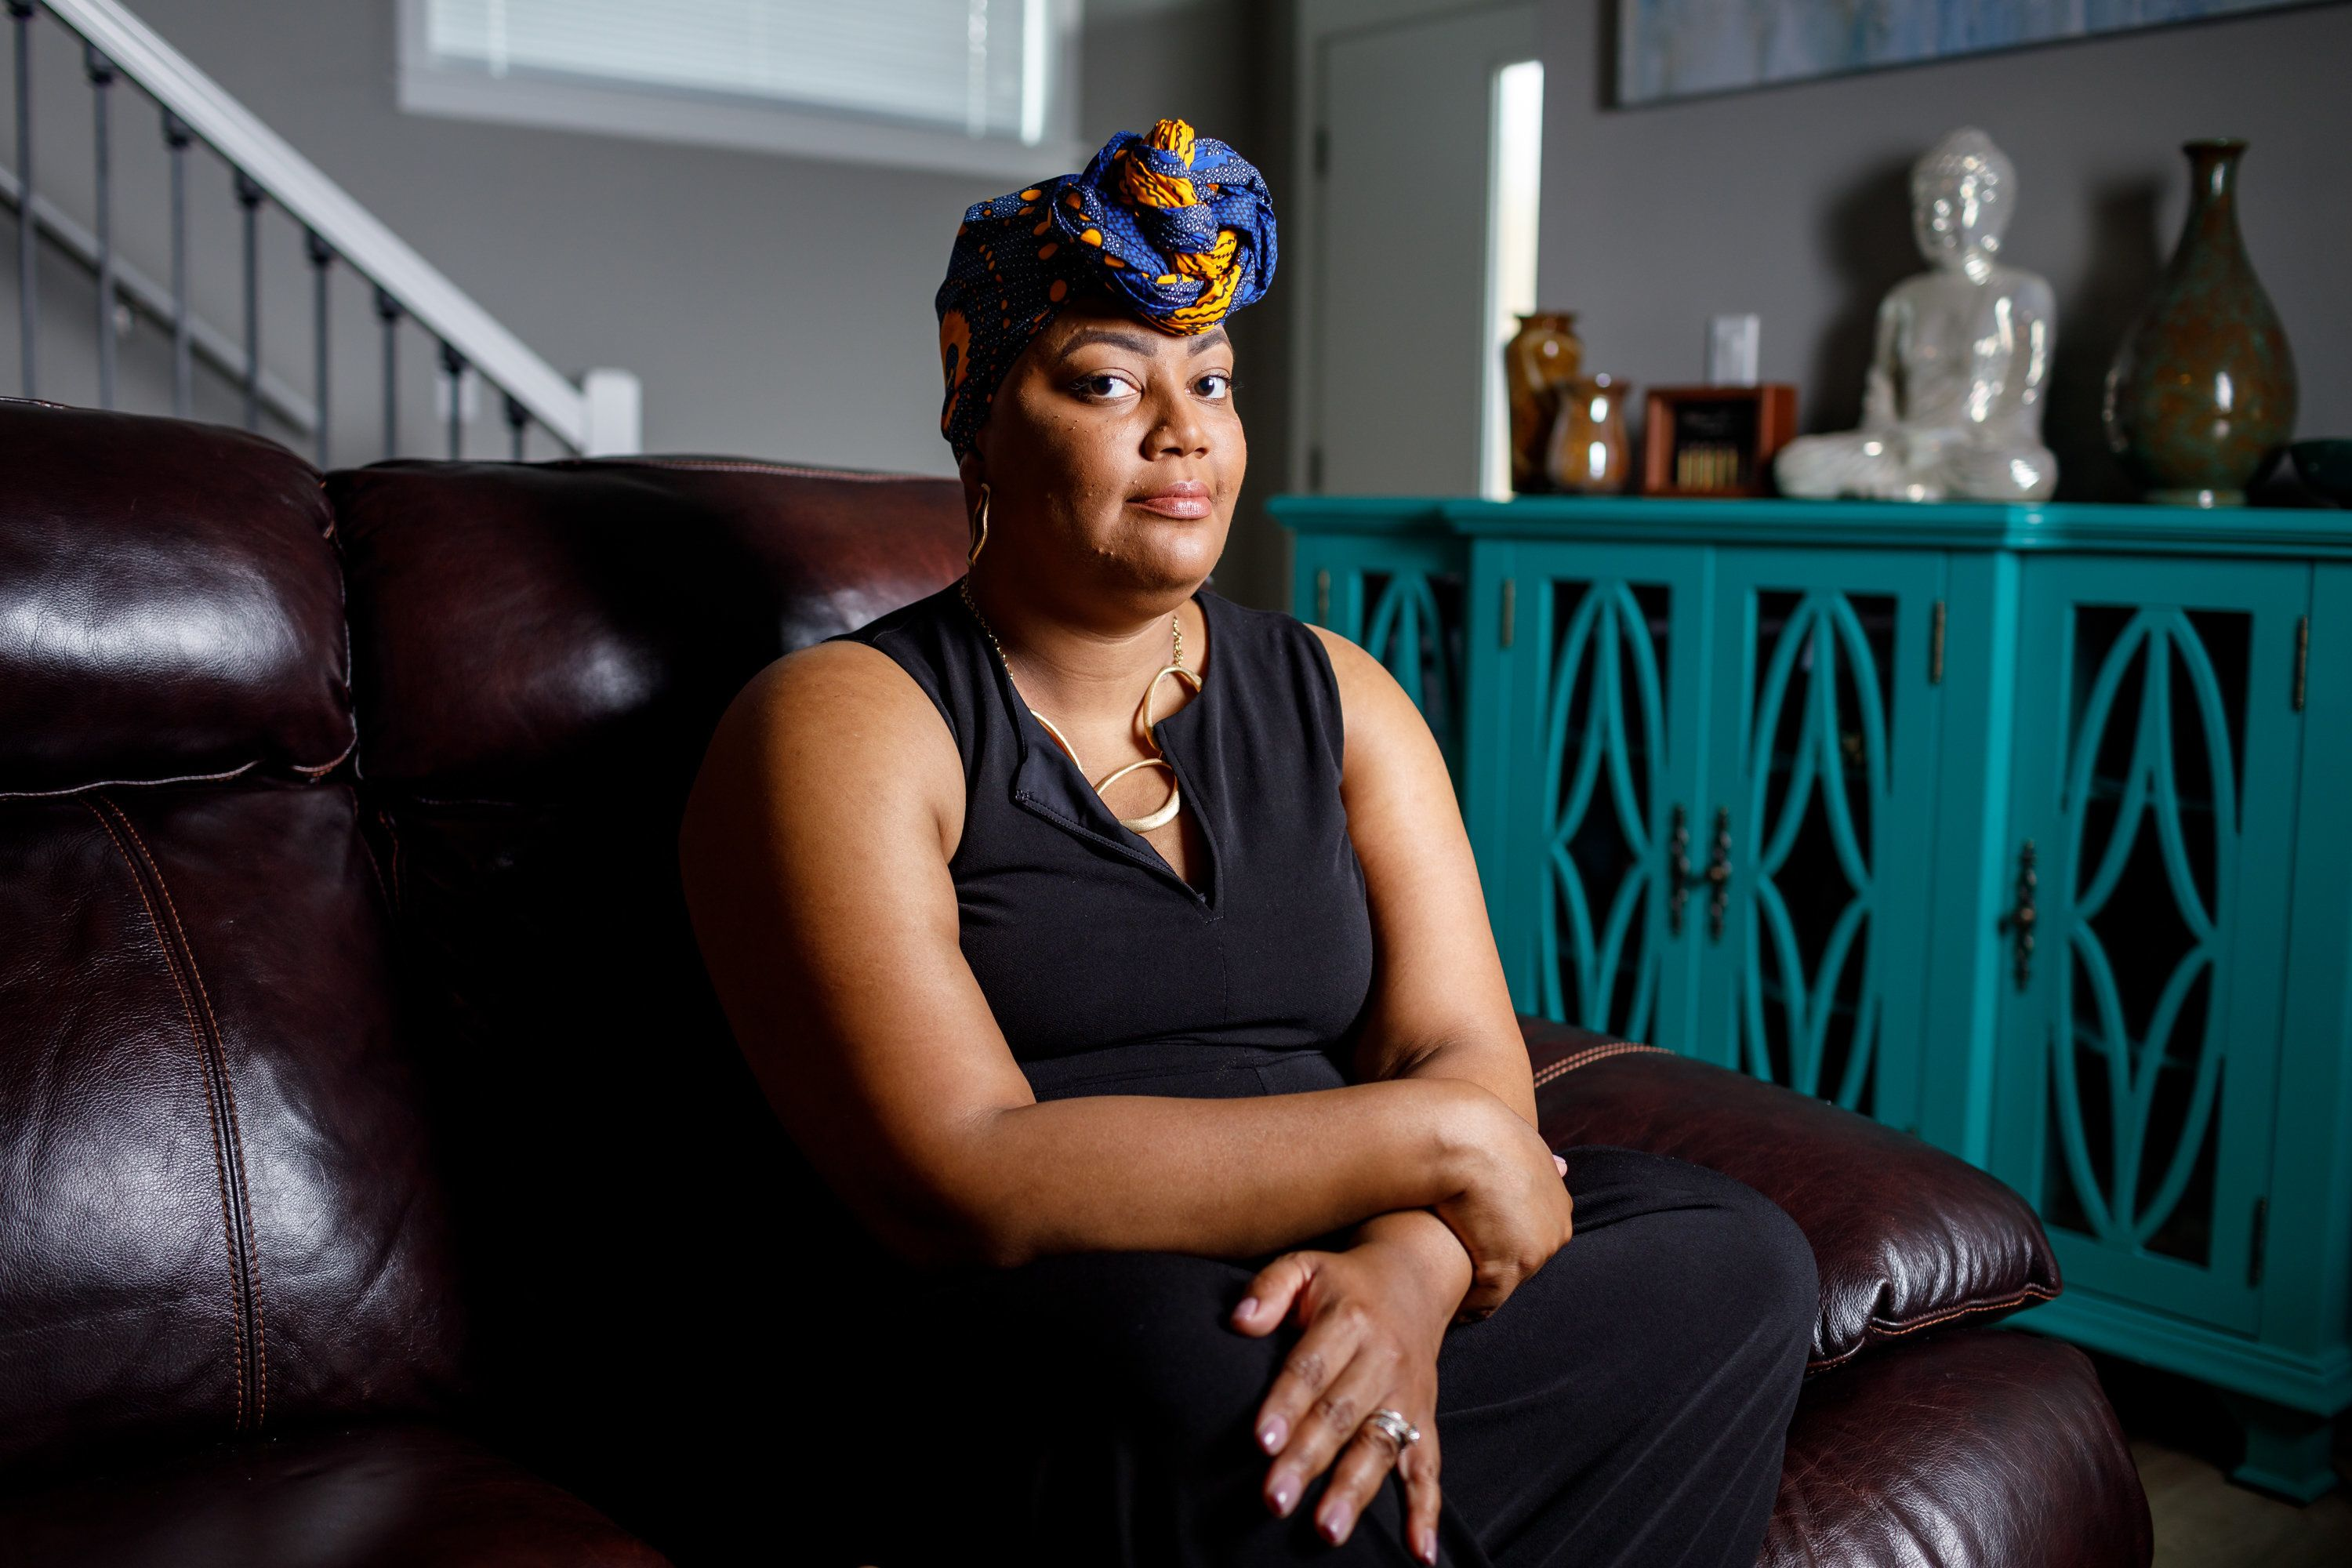 NEWBURG, OR – June 3rd, 2018: At her home in Newberg, OR 